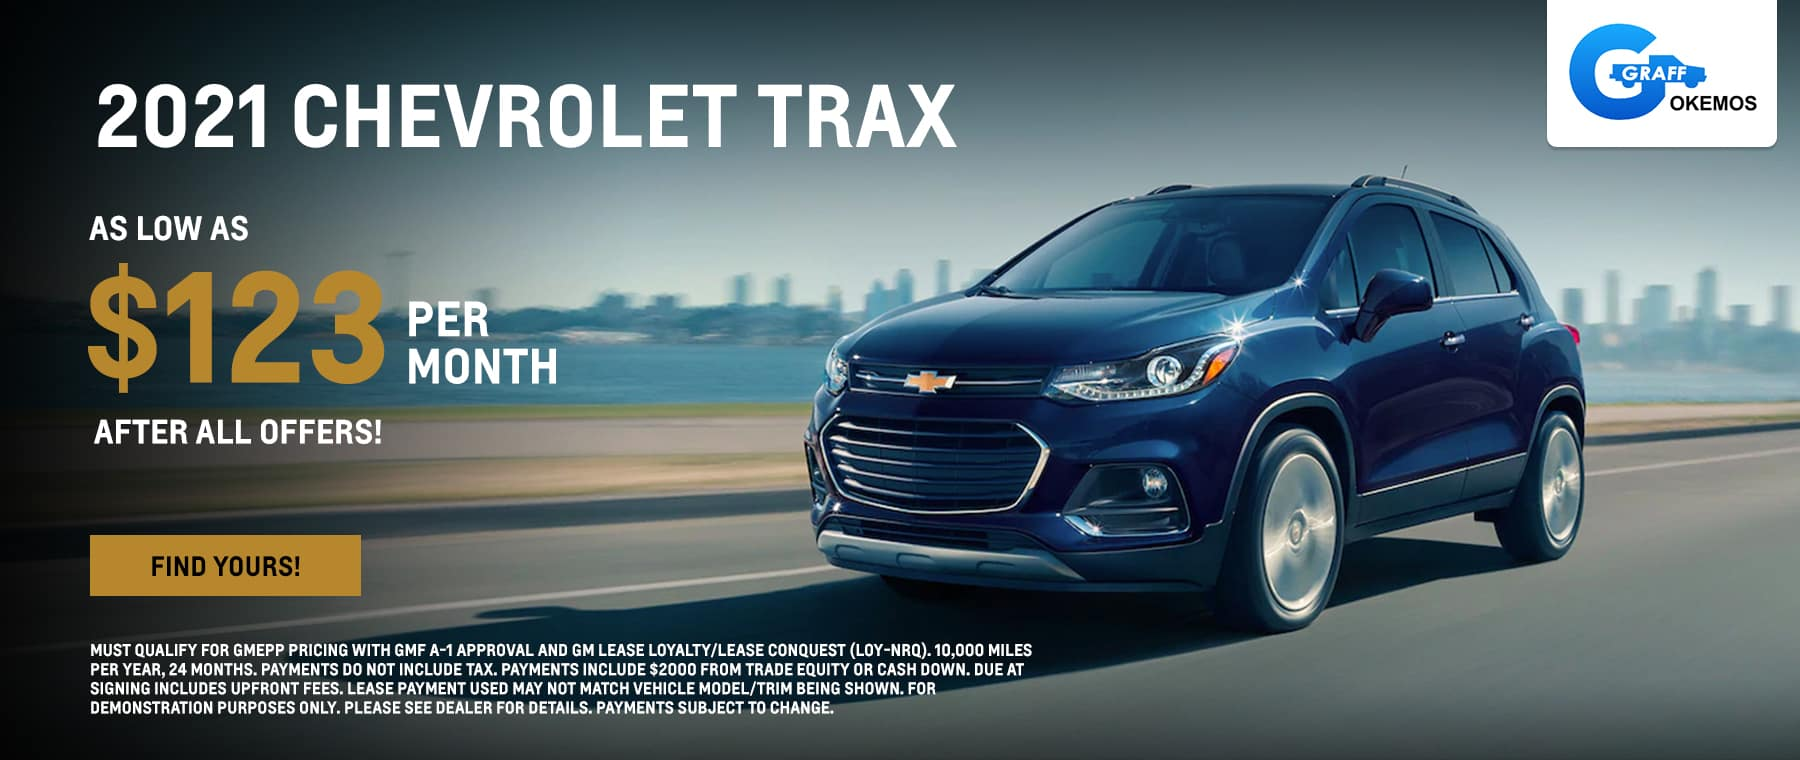 2021 Chevy Trax AS LOW AS $123 PER MONTH AFTER ALL OFFERS!*